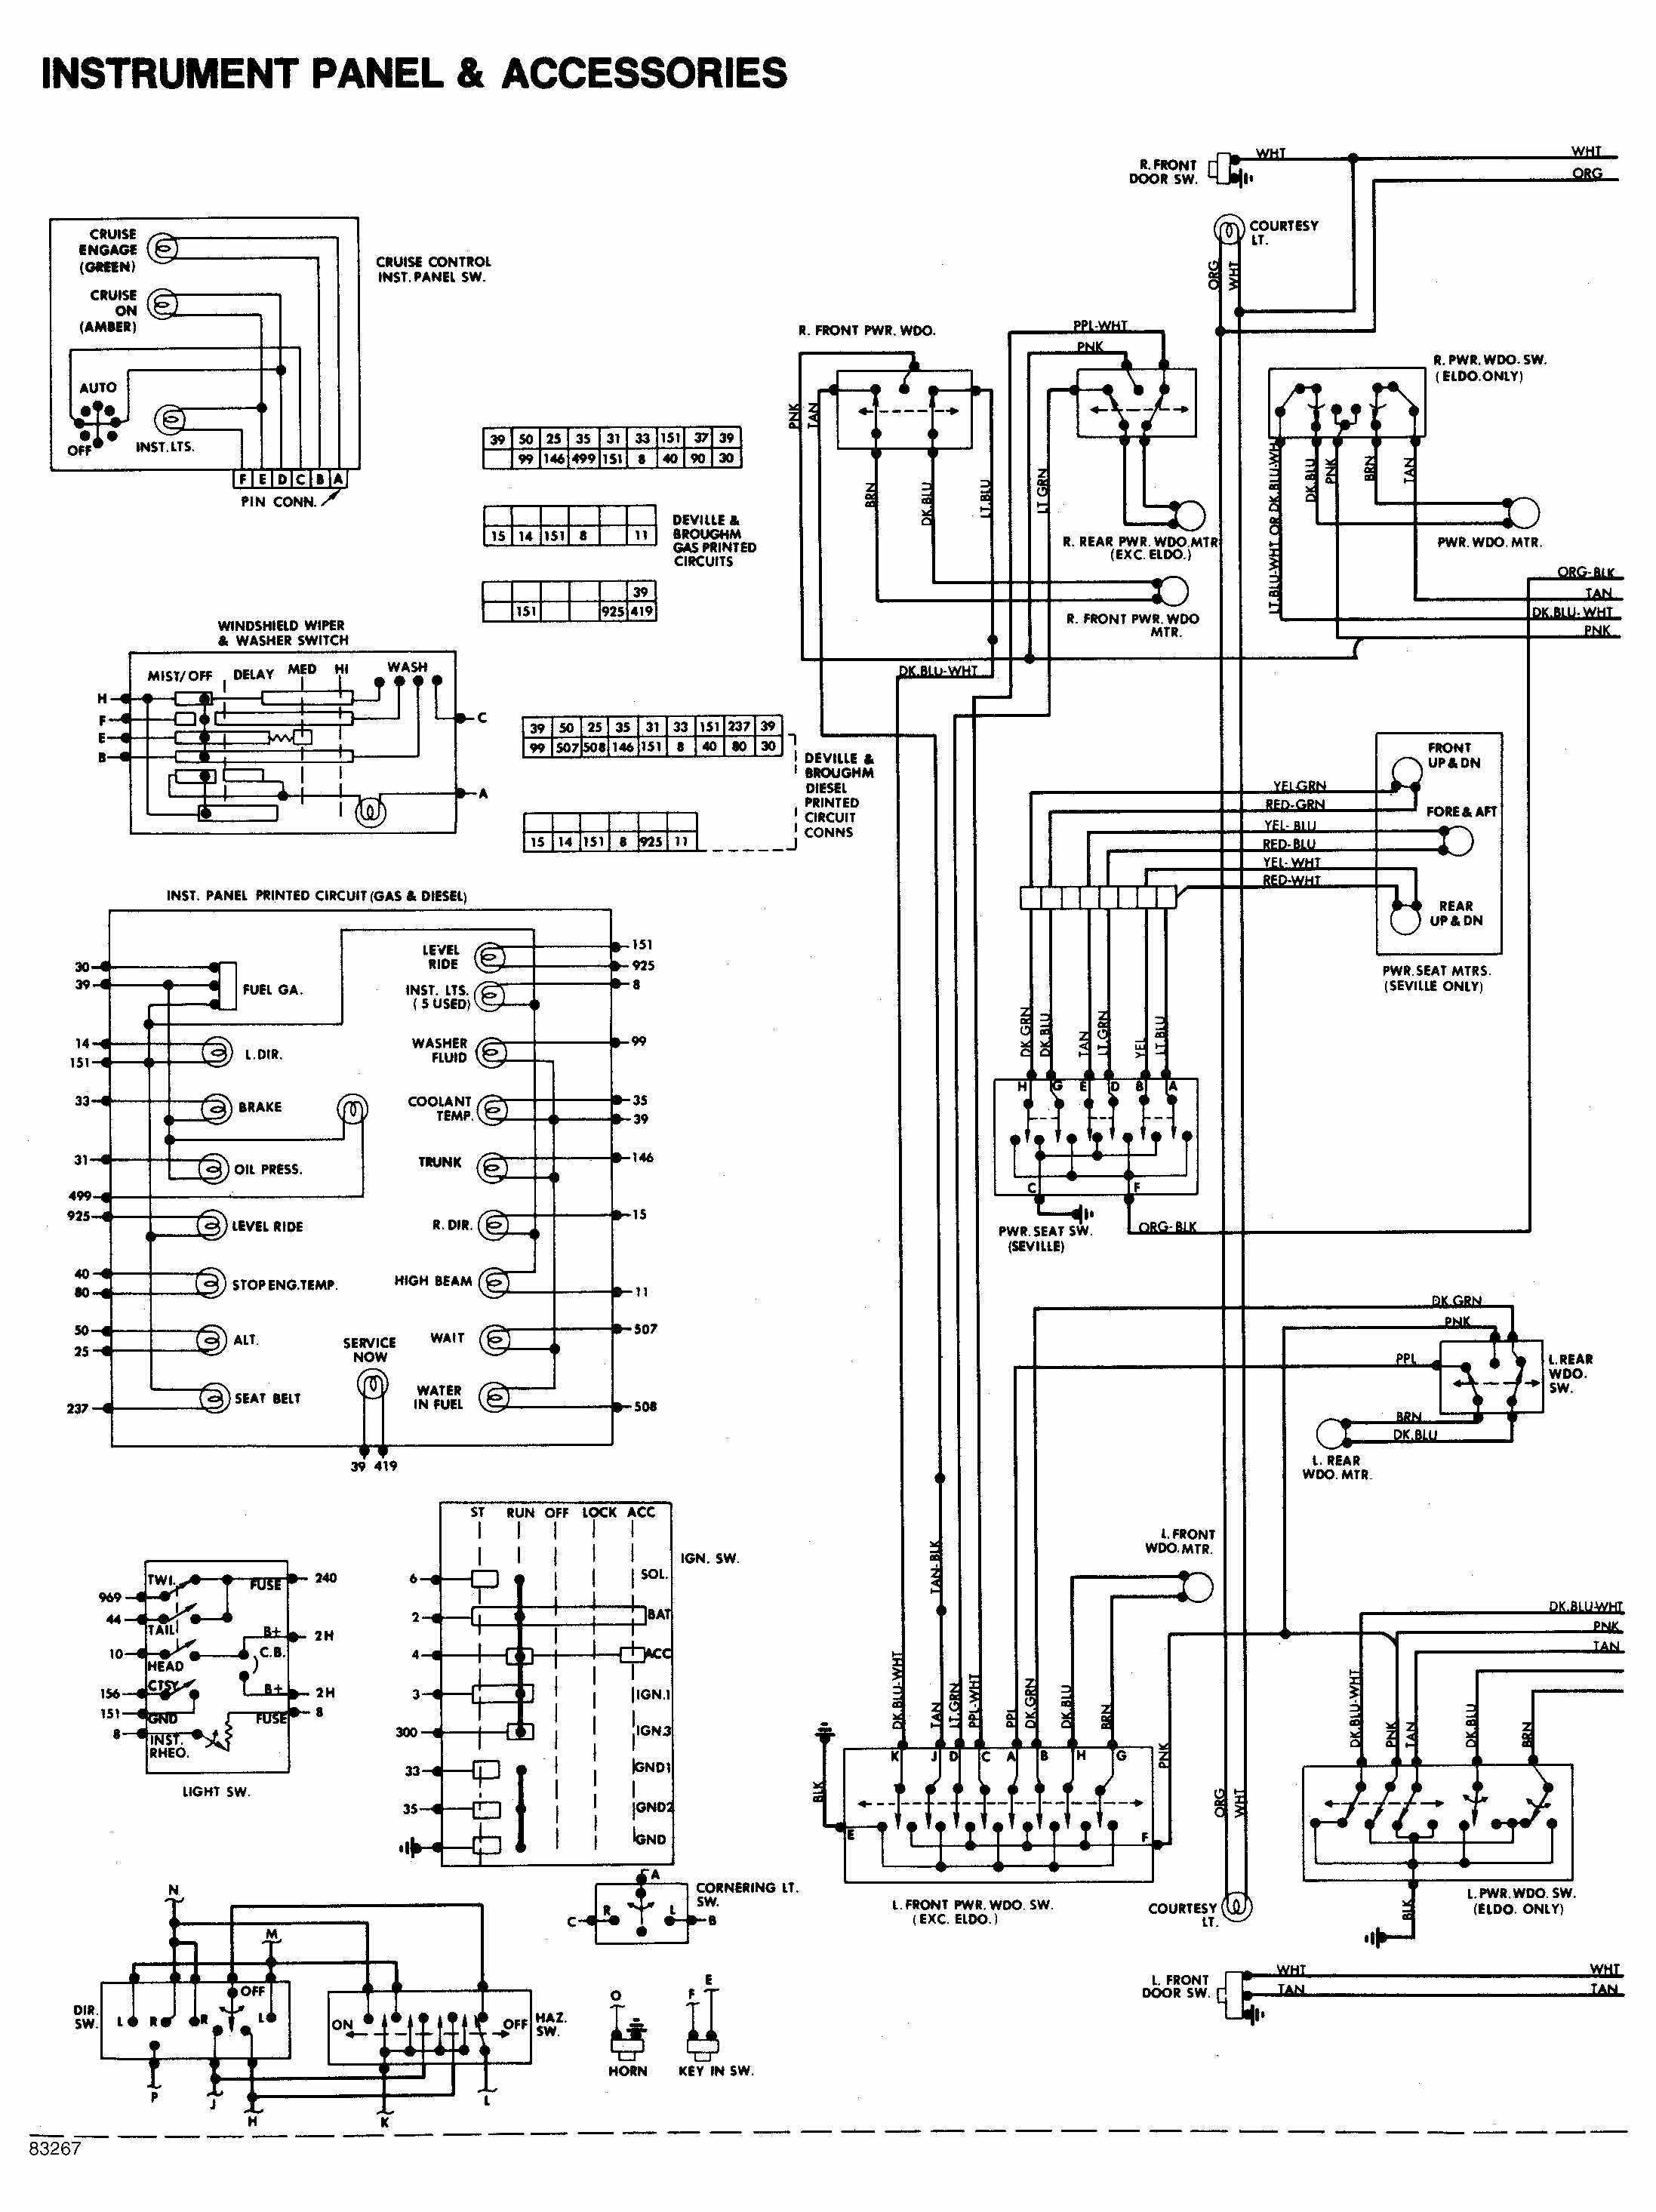 capacity yard truck wiring diagram Collection-wiring diagram for accessories auto wiring diagram today u2022 rh autodiagram today Capacity TJ5000 Fuse Layout 7-k